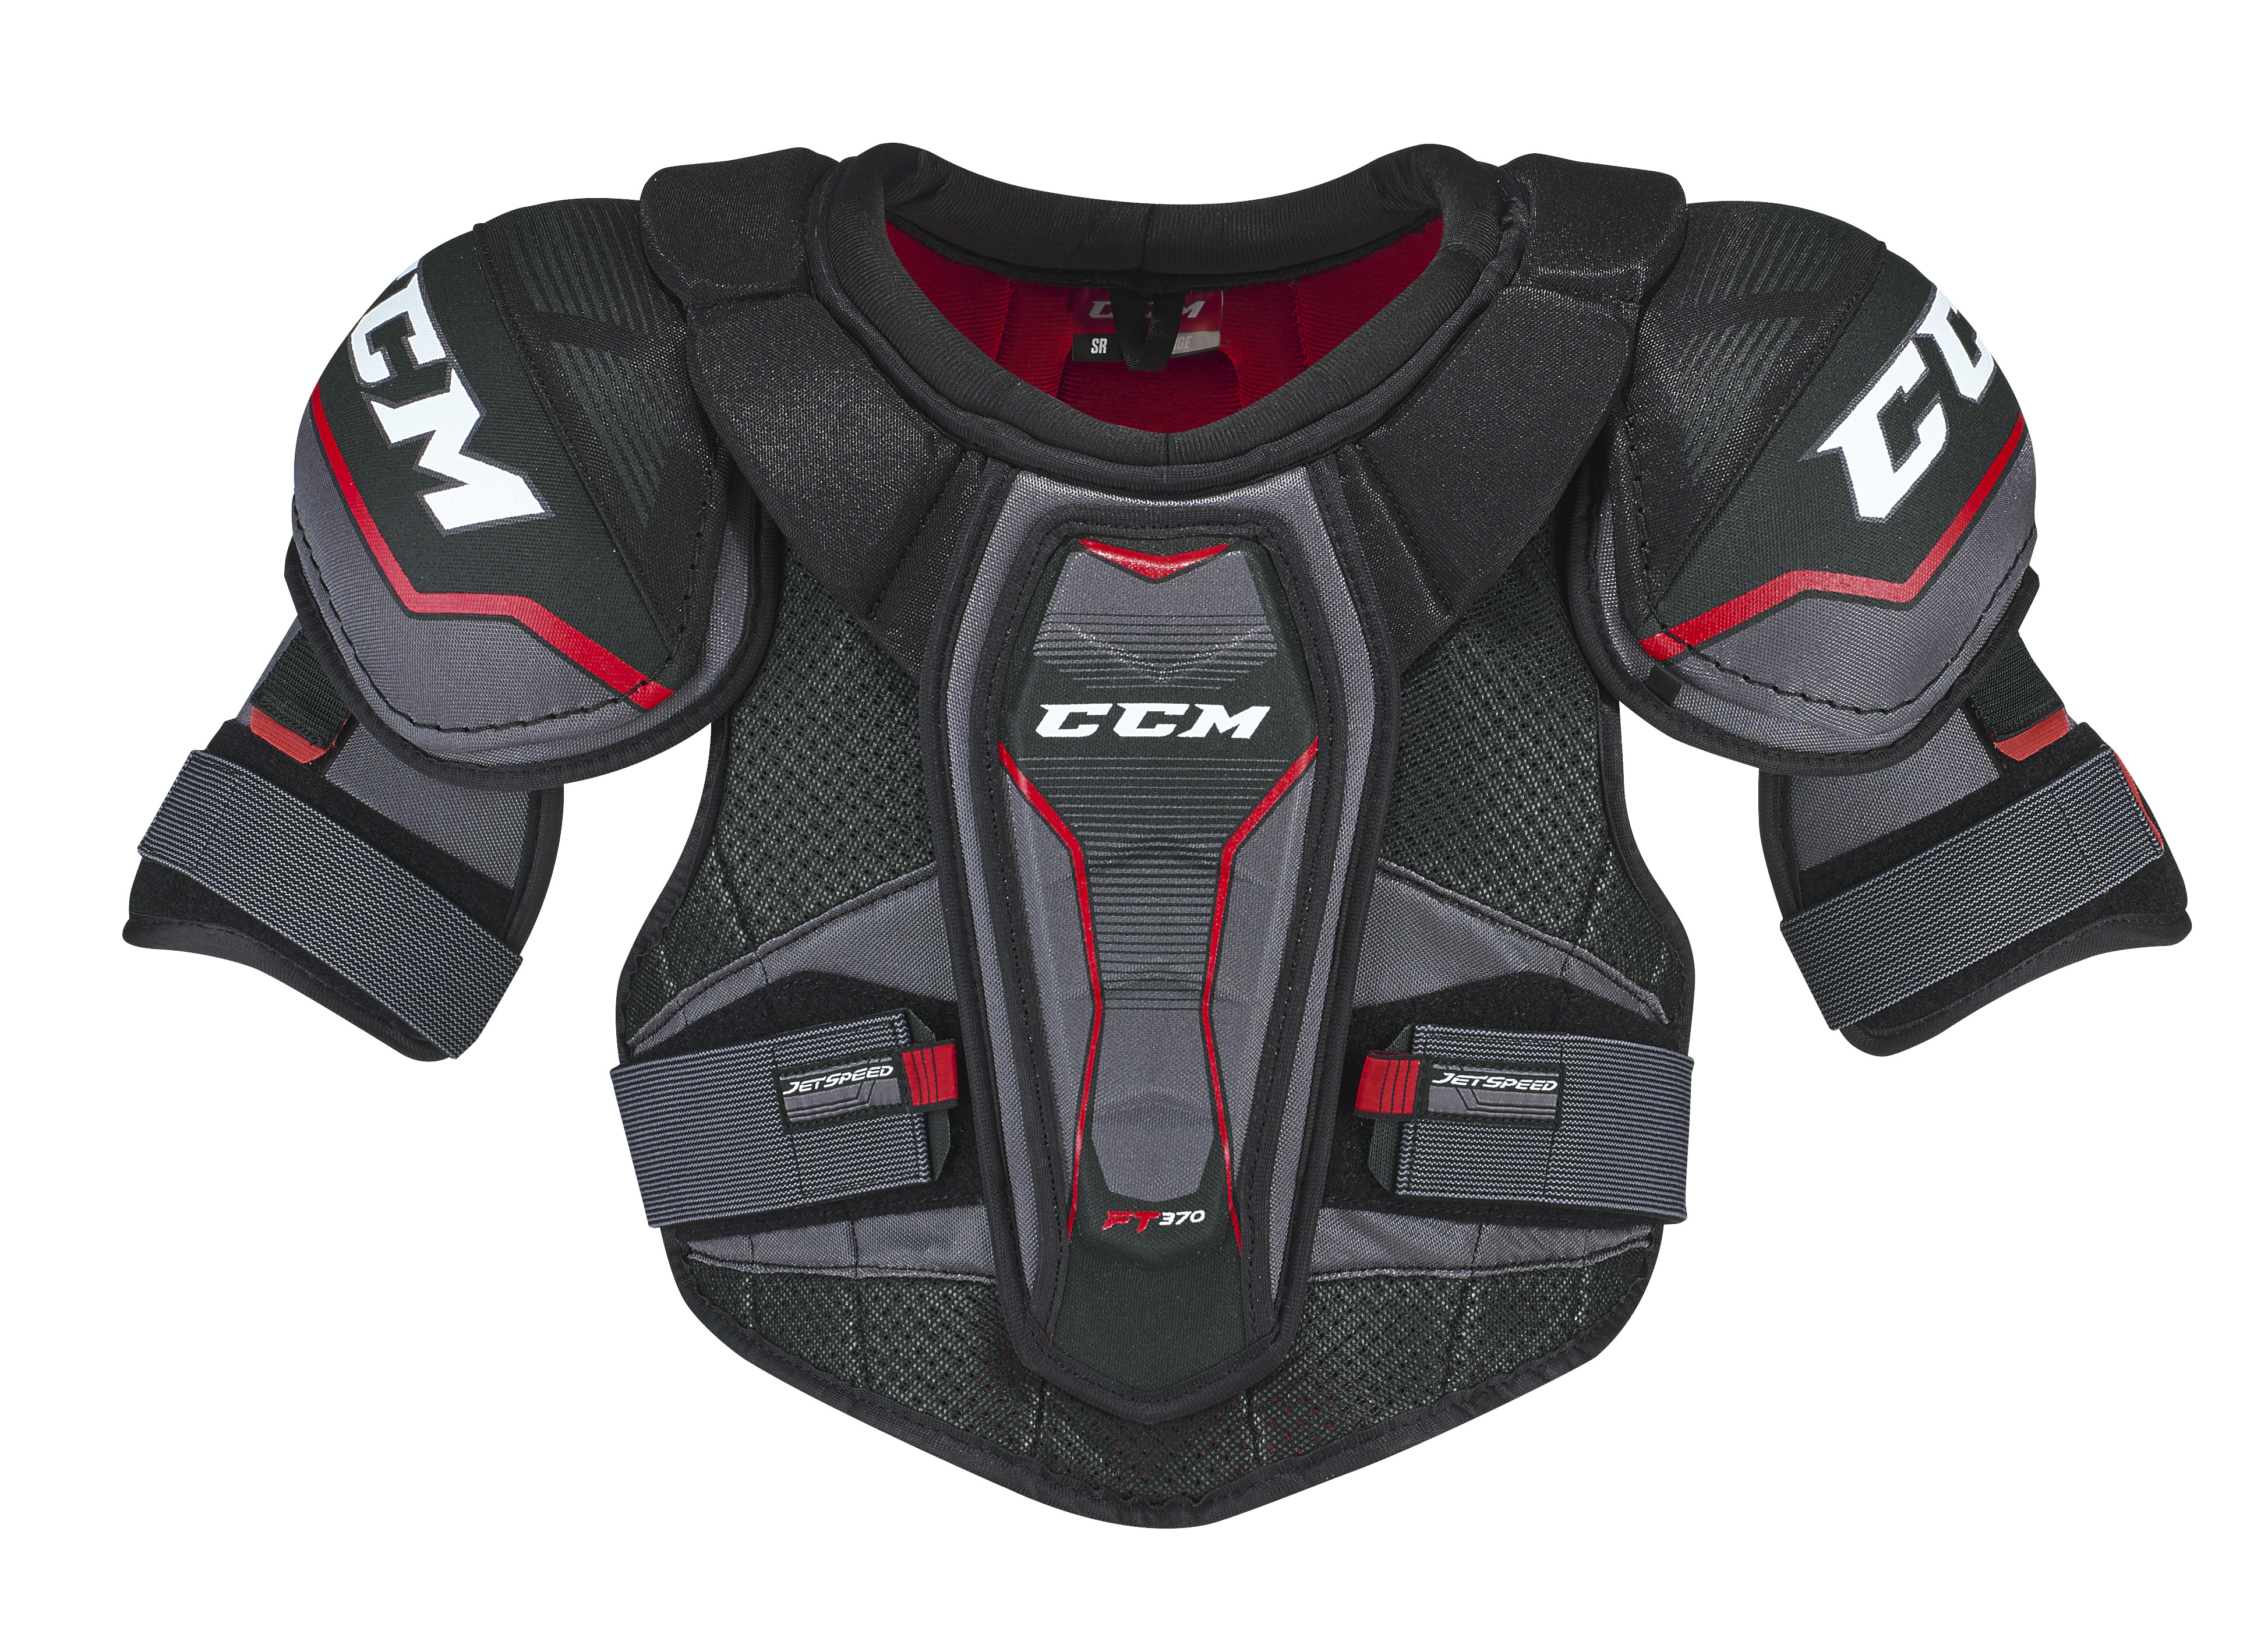 CCM JETSPEED FT370 Shoulder Pads